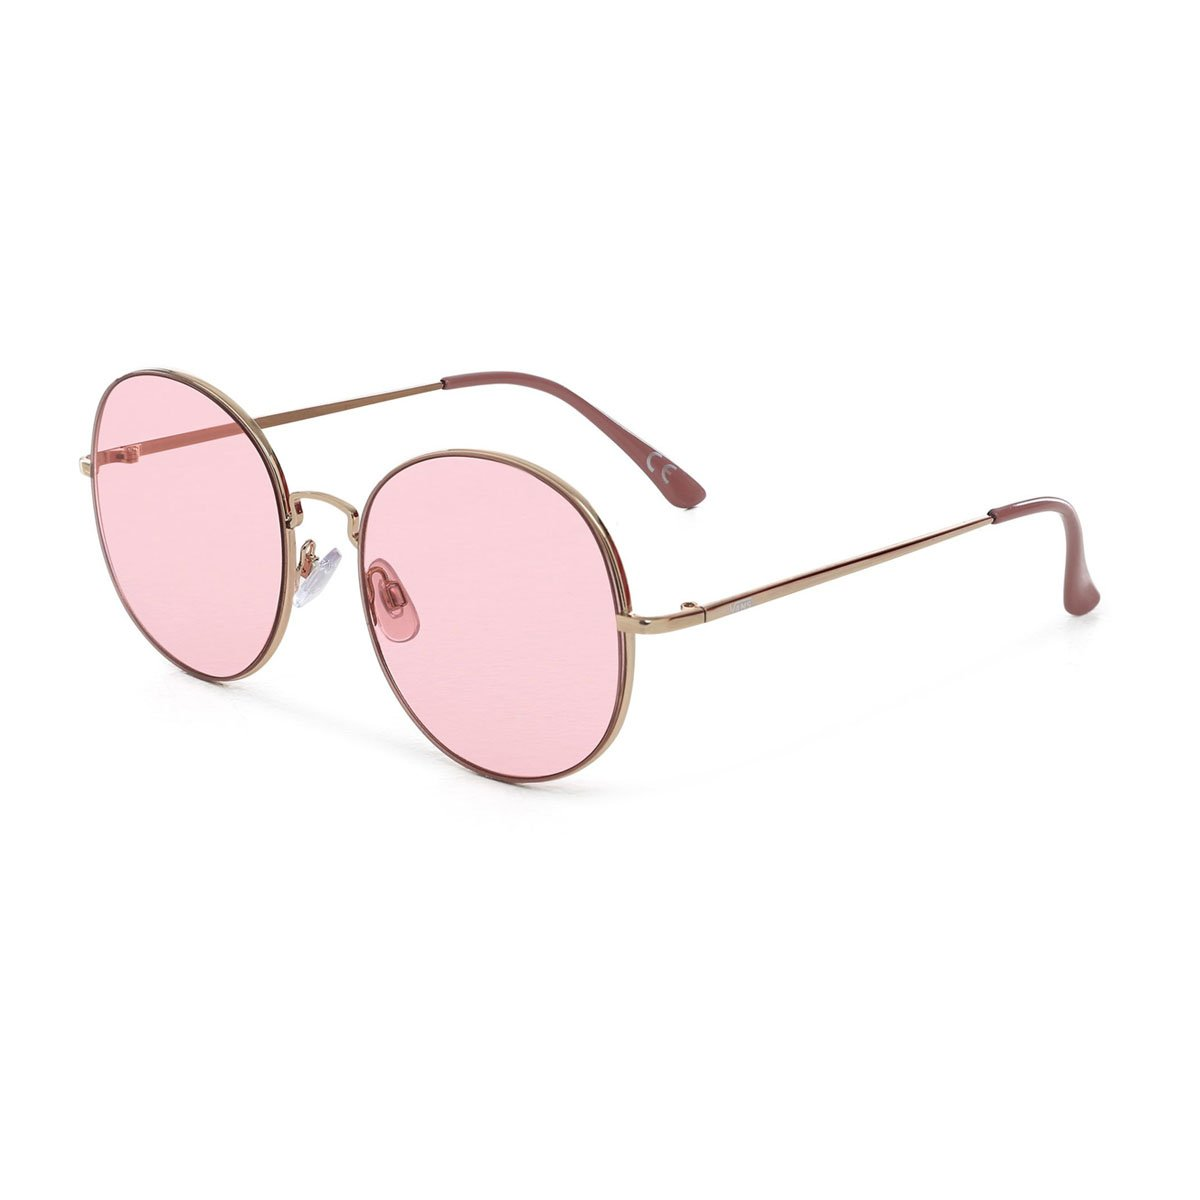 DAYDREAMER SUNGLASSES